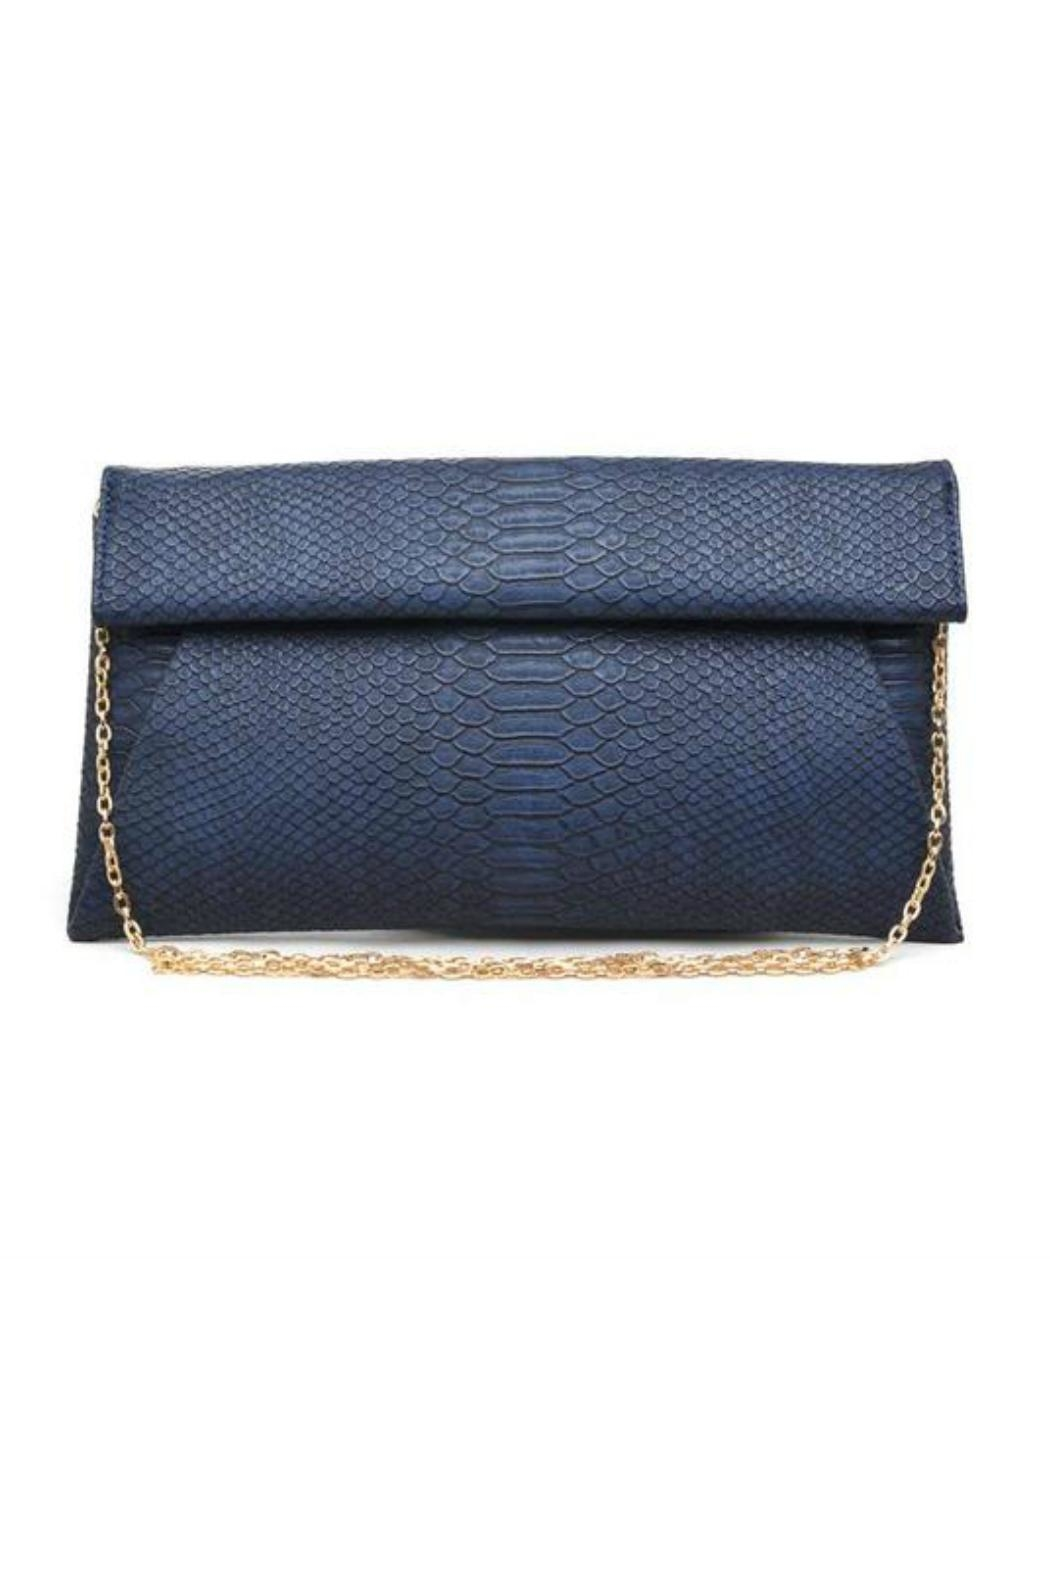 Urban Expressions Navy Emilia Clutch - Main Image